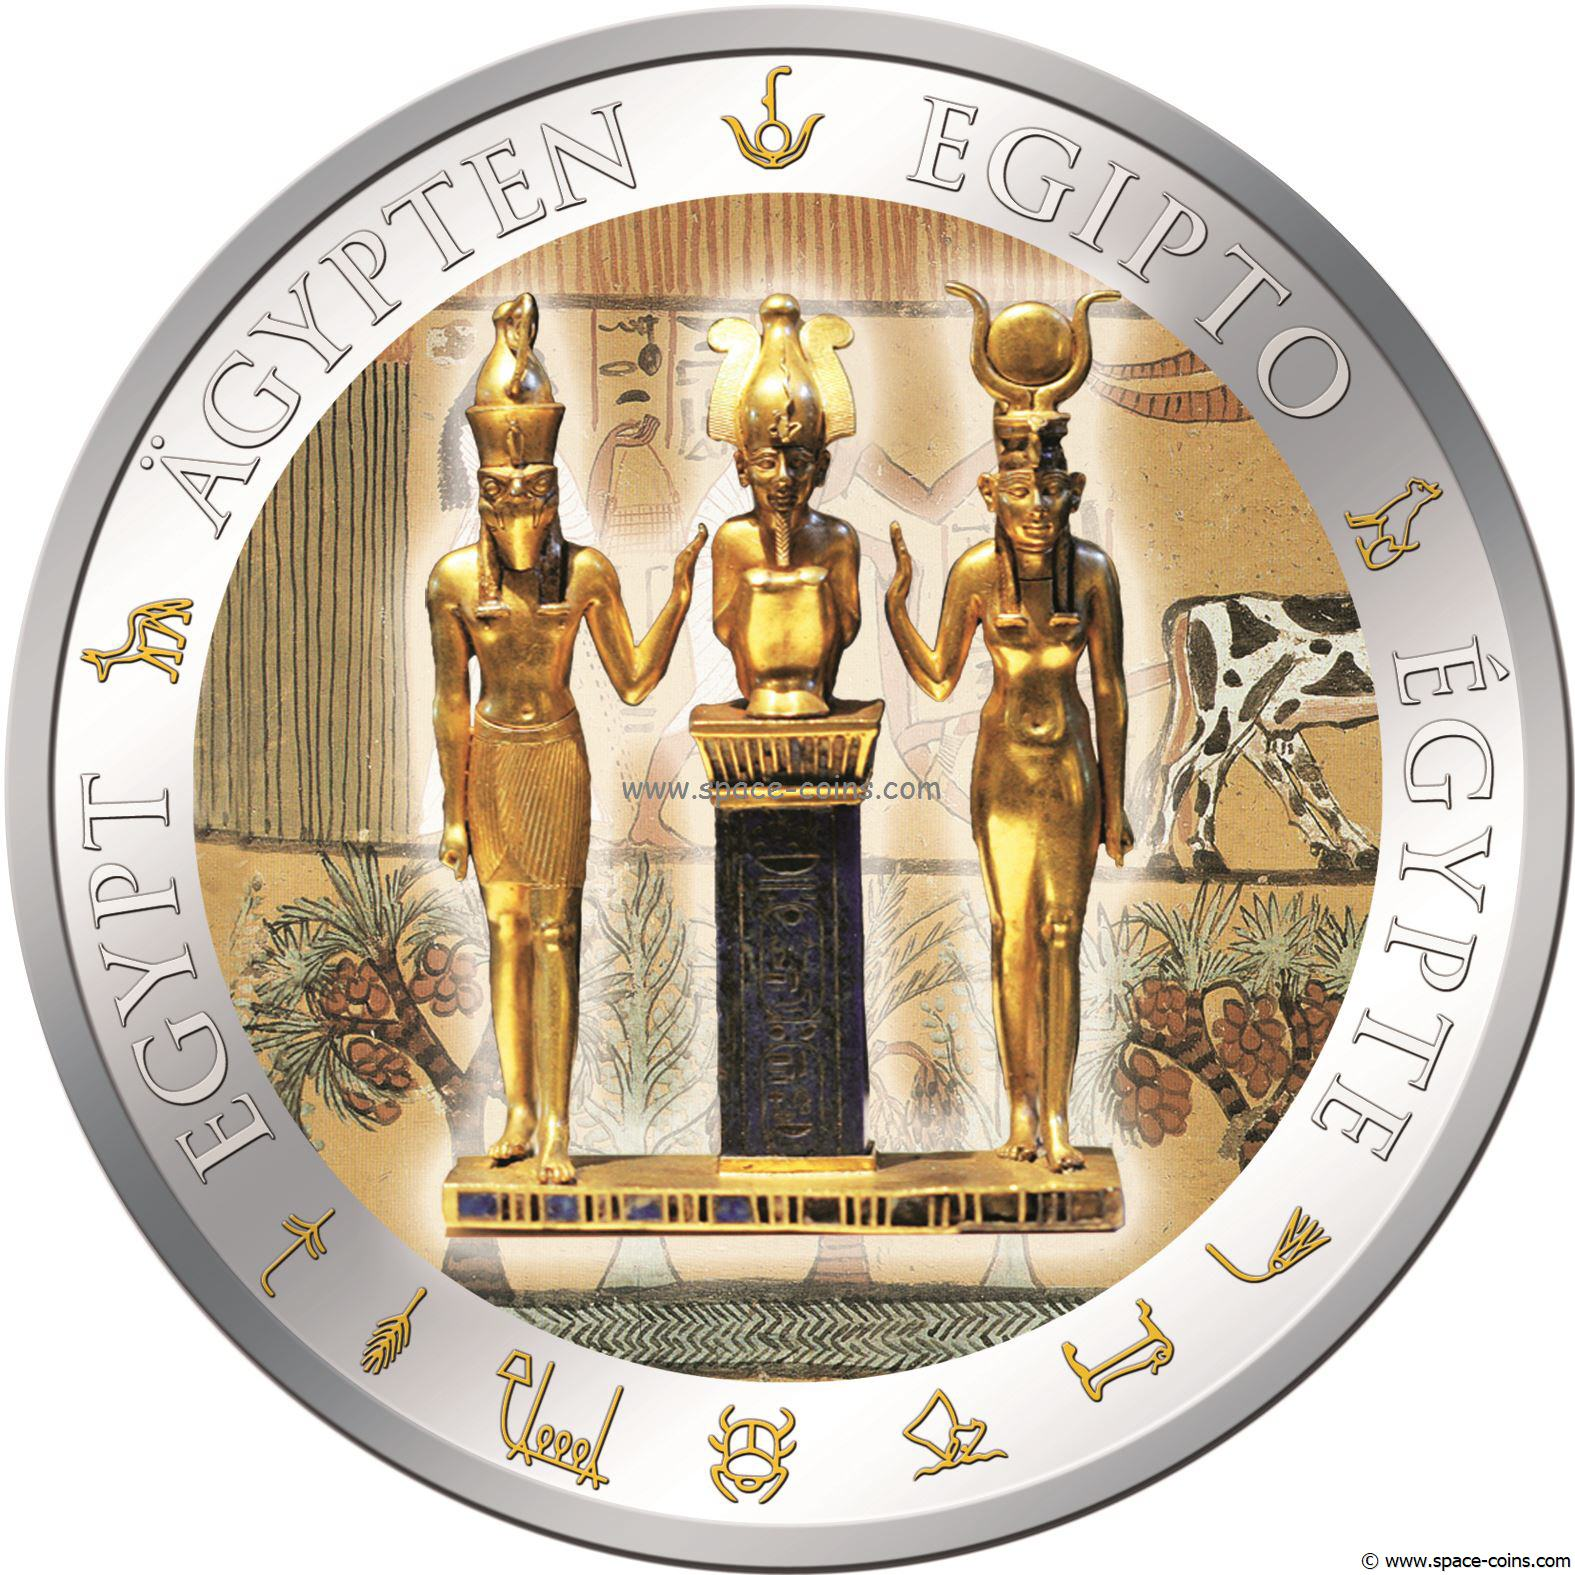 Egyptian Silver Coins $1 Silver Proof Coin